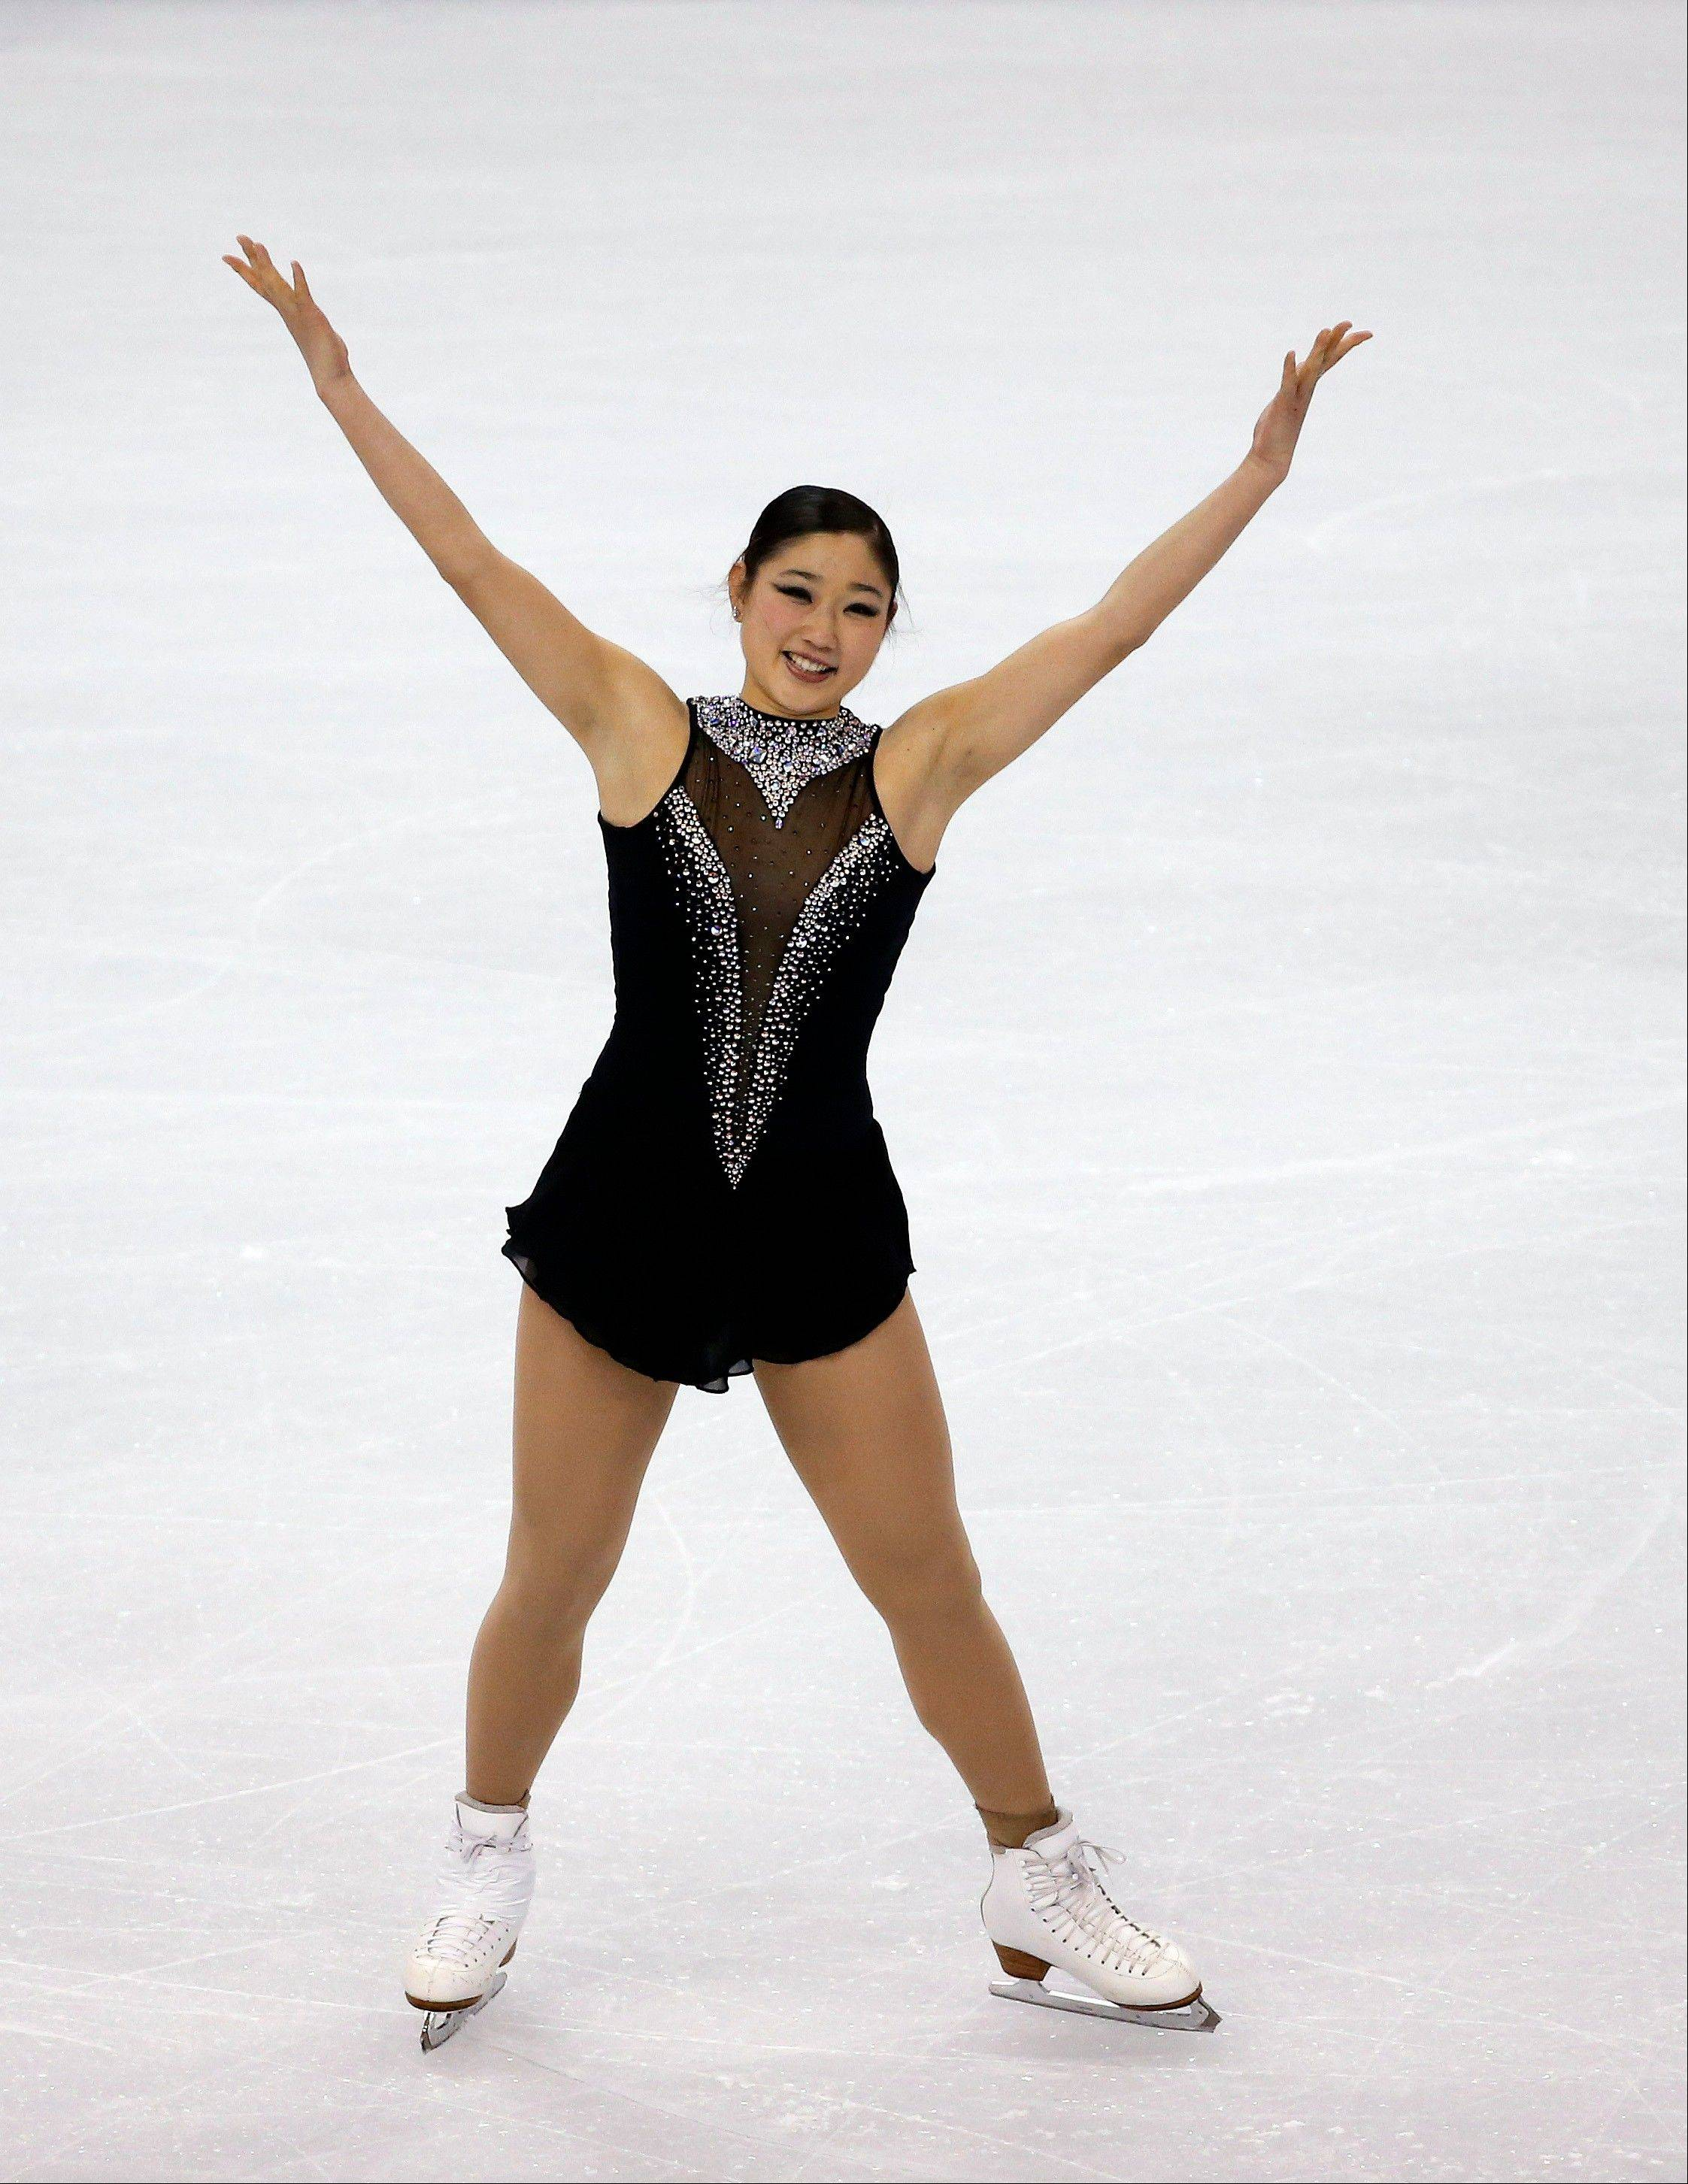 Mirai Nagasu reacts after giving a strong performance during the women's free skate at the U.S. Figure Skating Championships in Boston.